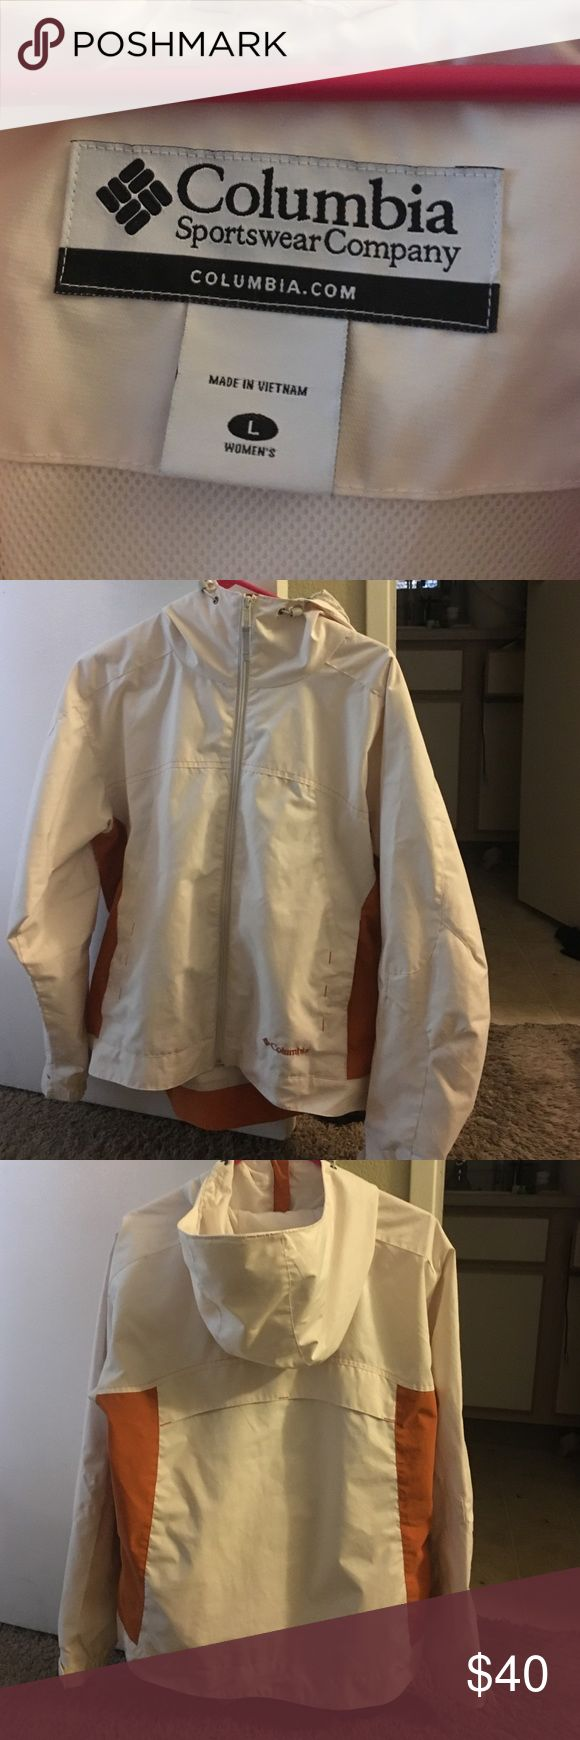 Women's size L Columbia Sportswear rain coat. Women's Large, orange and white, hooded, jersey lined. Good condition, no stains. Columbia Jackets & Coats